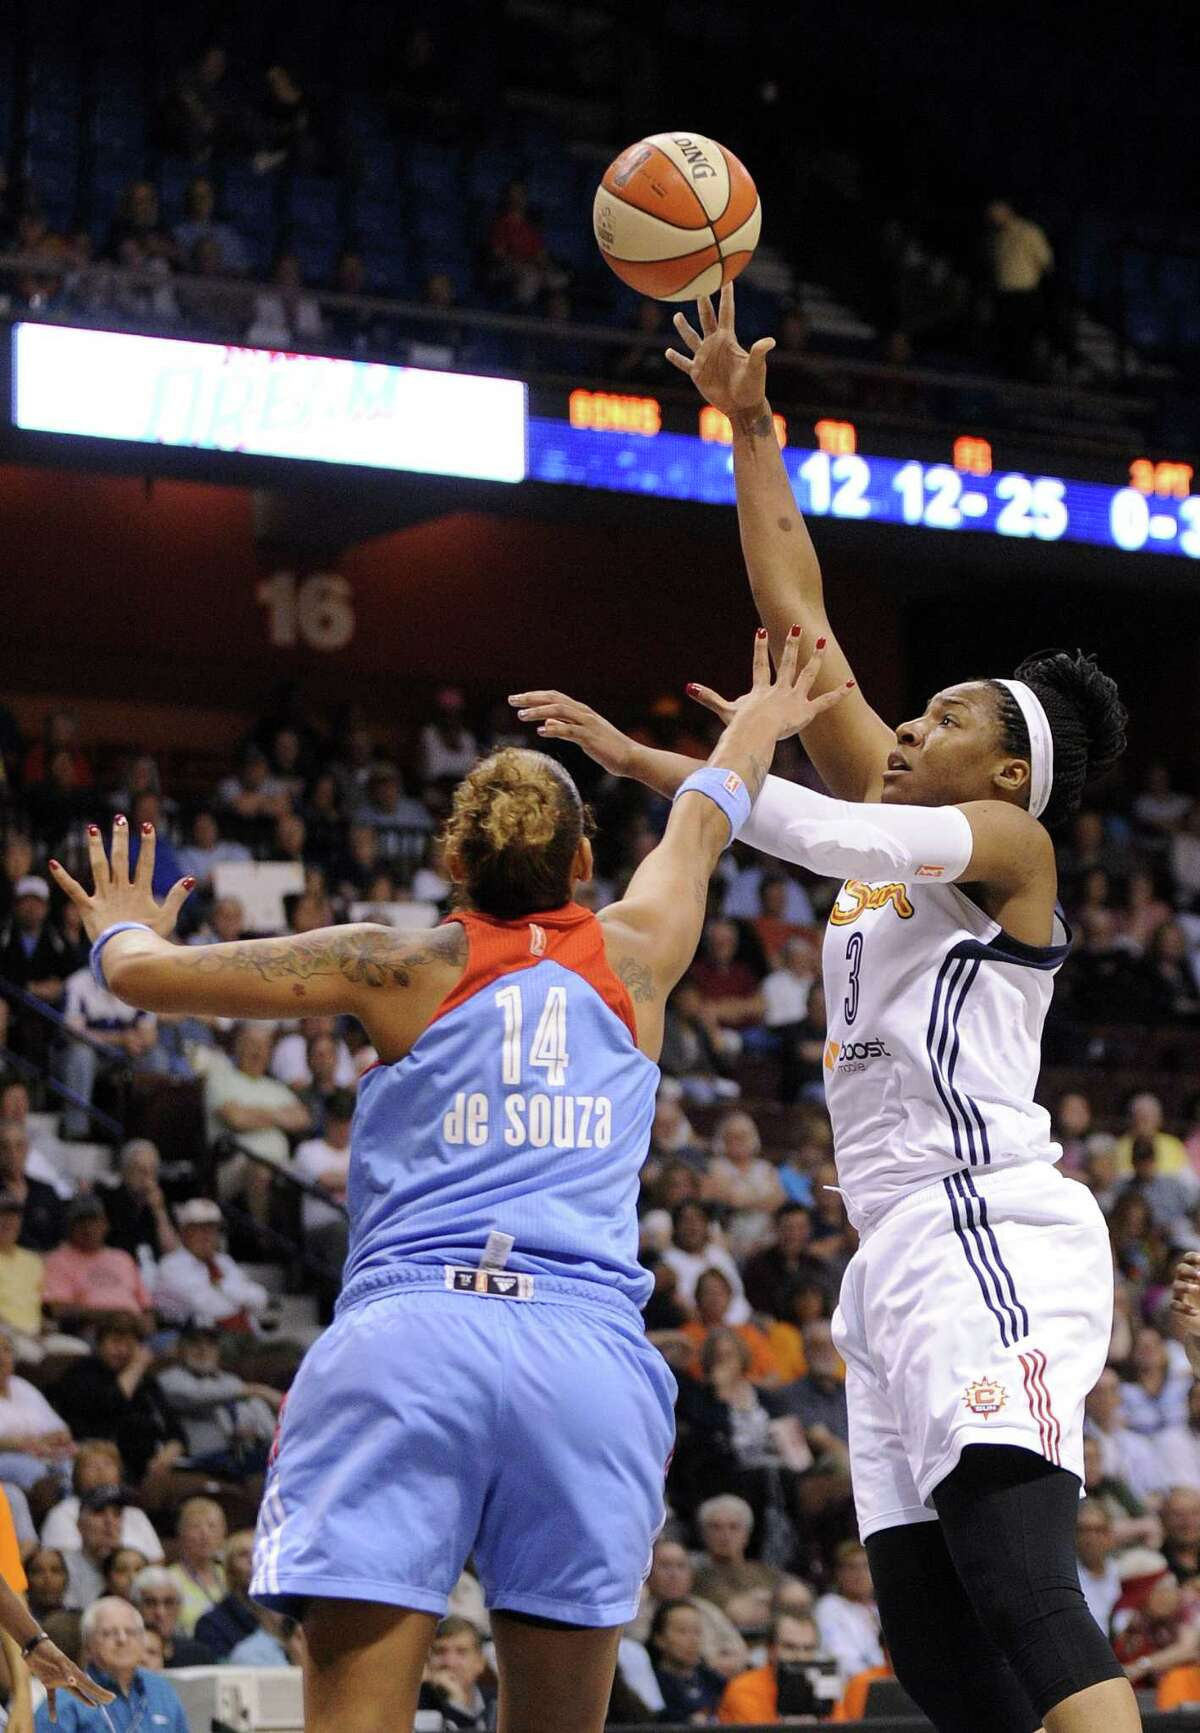 The Connecticut Sun's Kelsey Bone, right, shoots over the Dream's Erika de Souza during the first half on Sunday.